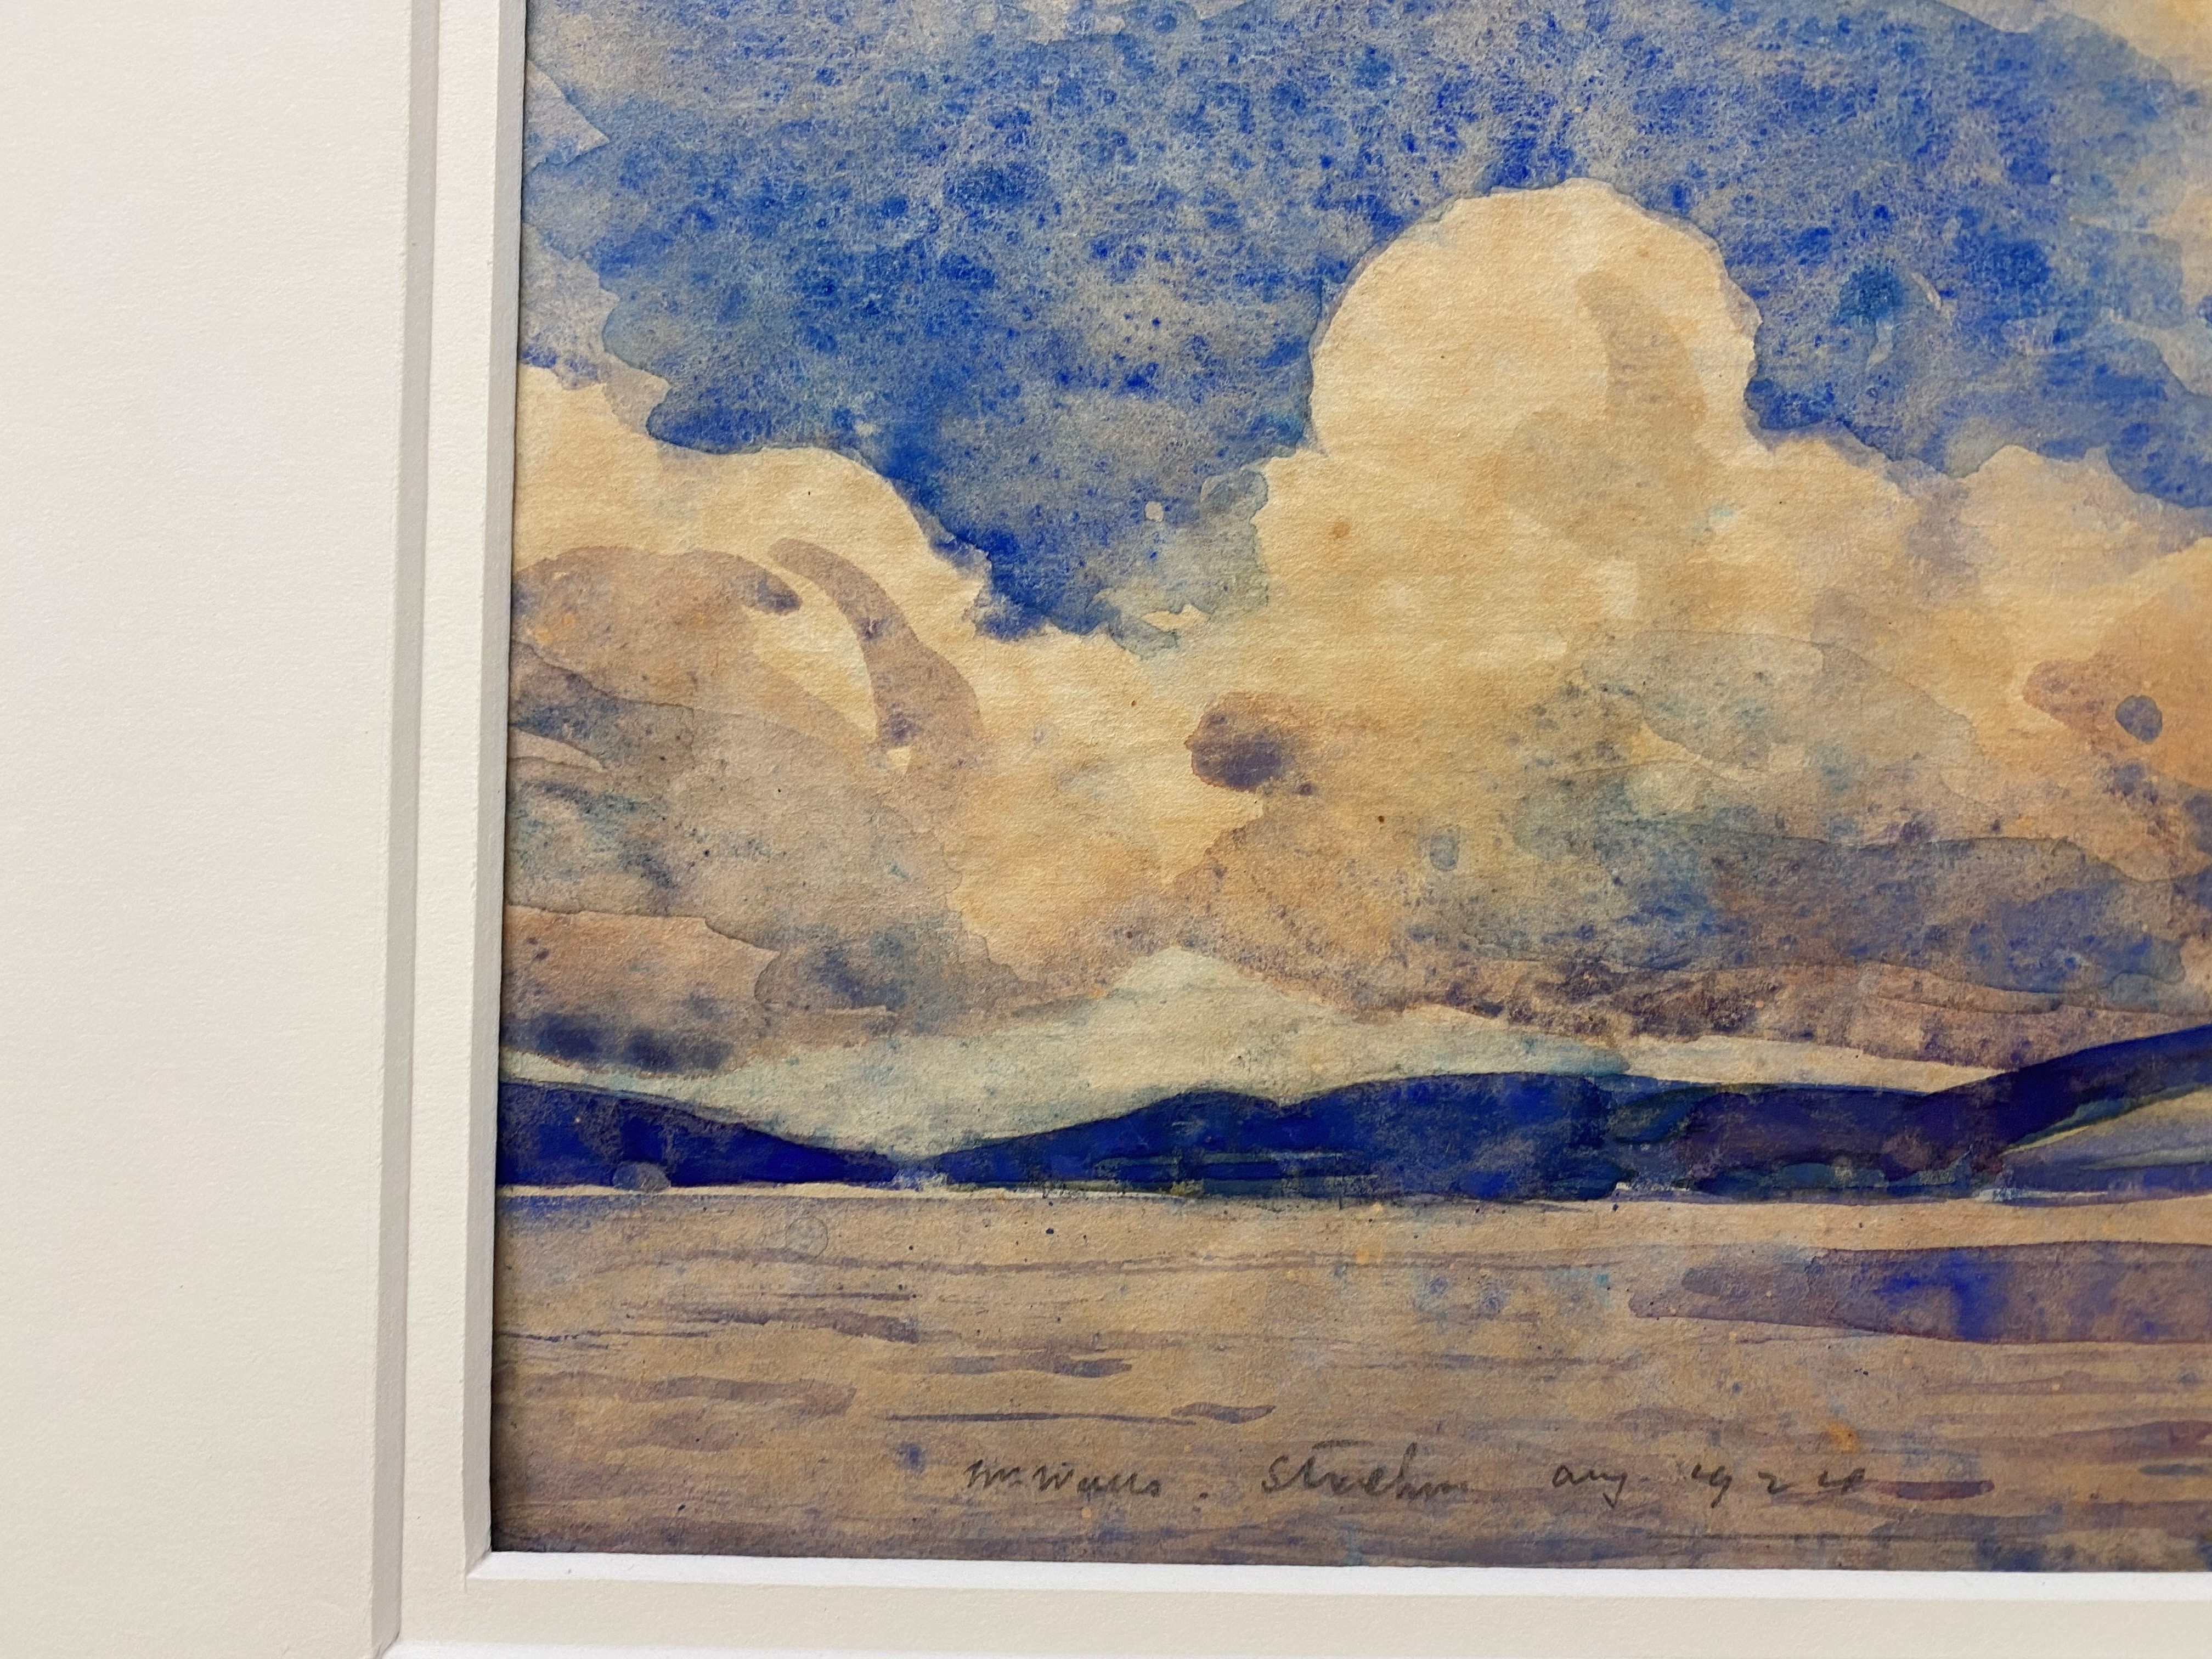 """William Walls 1860-1942 ARSA, RSW, RSA signed watercolour """"Cloudy day Strathcurr"""" - Image 4 of 4"""